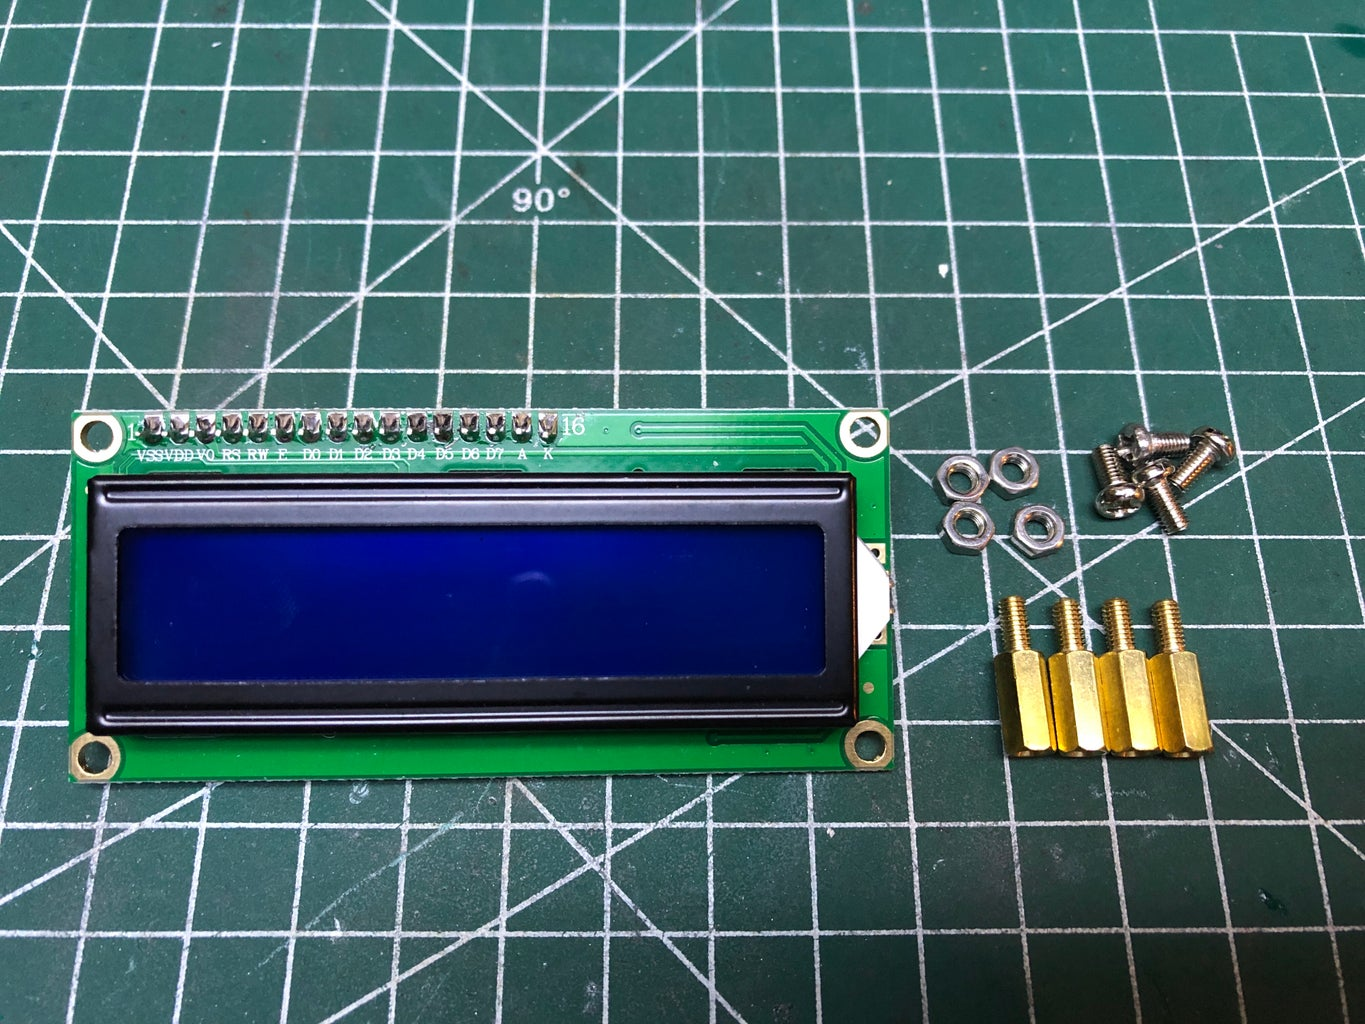 Mounting the LCD Screen